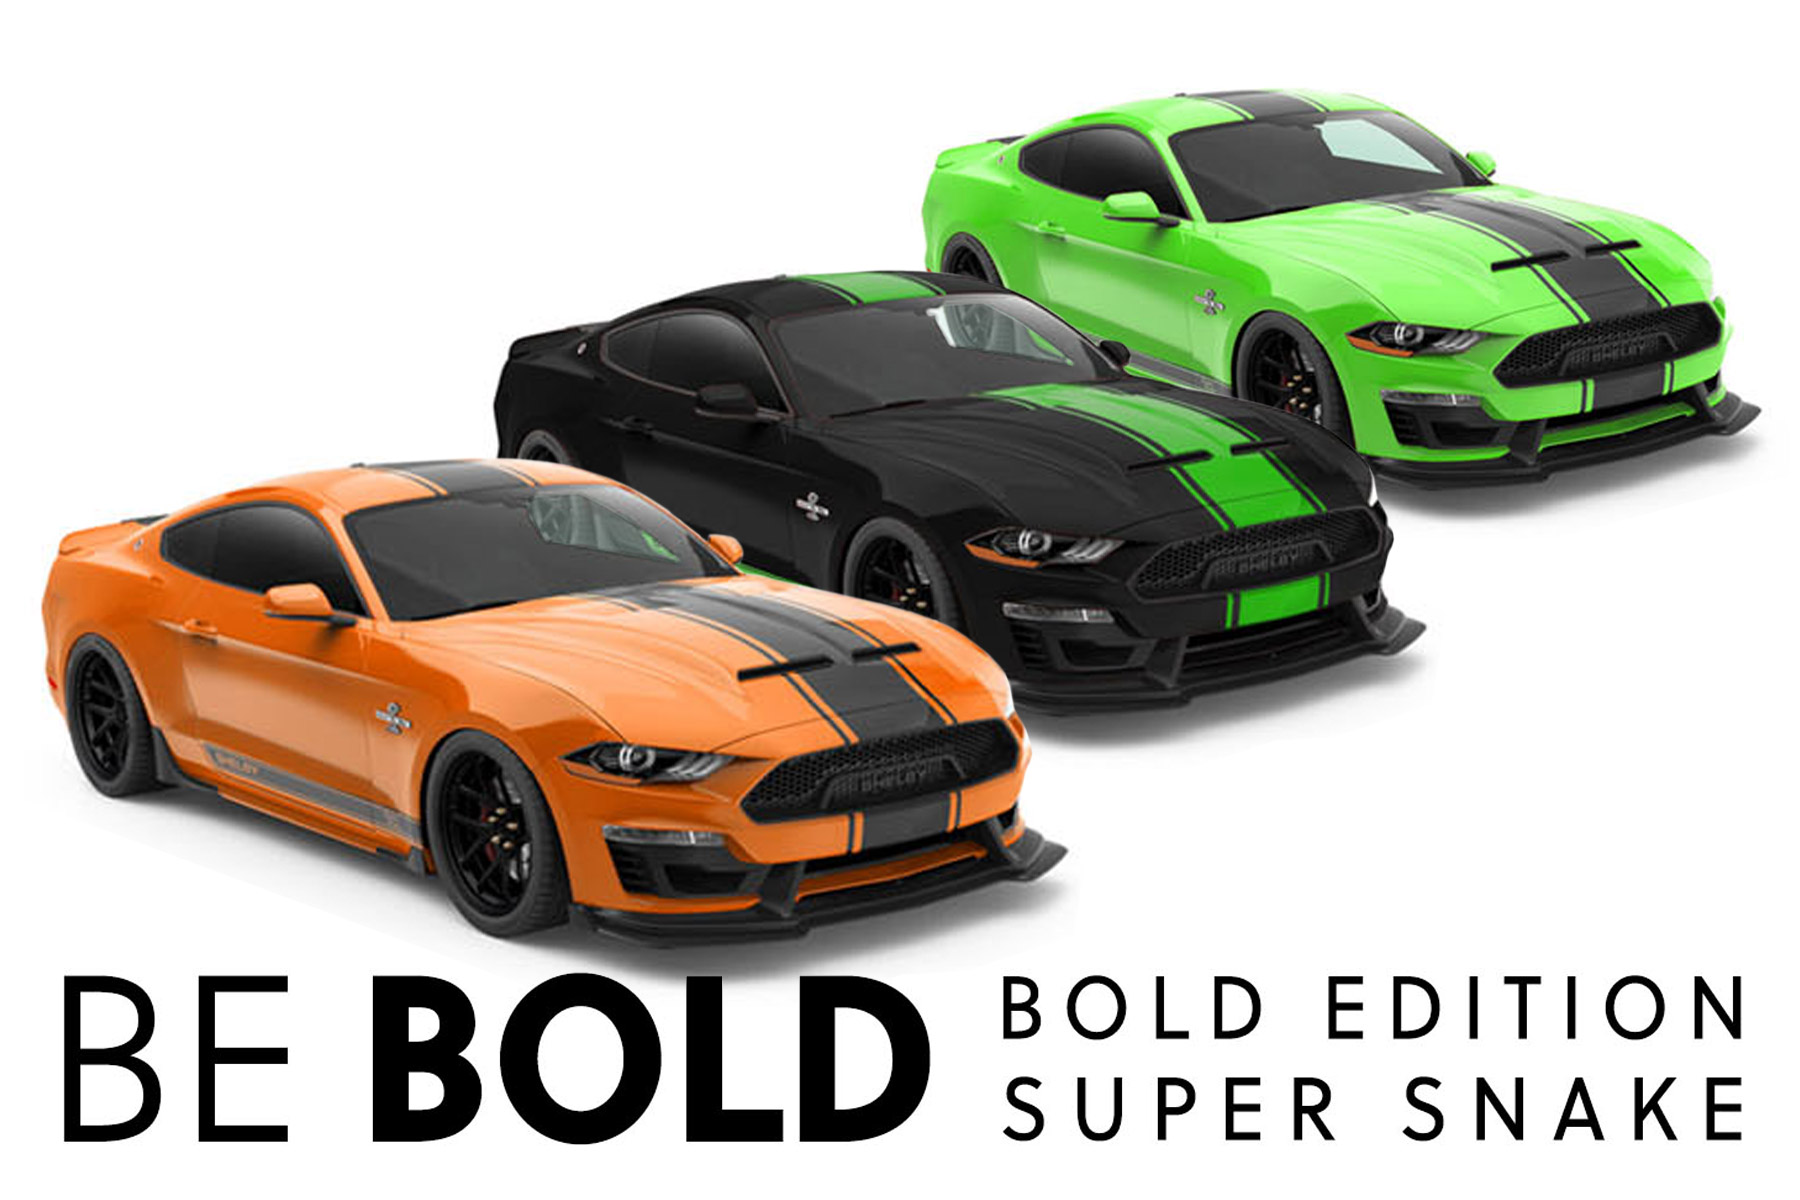 2020 Shelby Super Snake Bold Edition